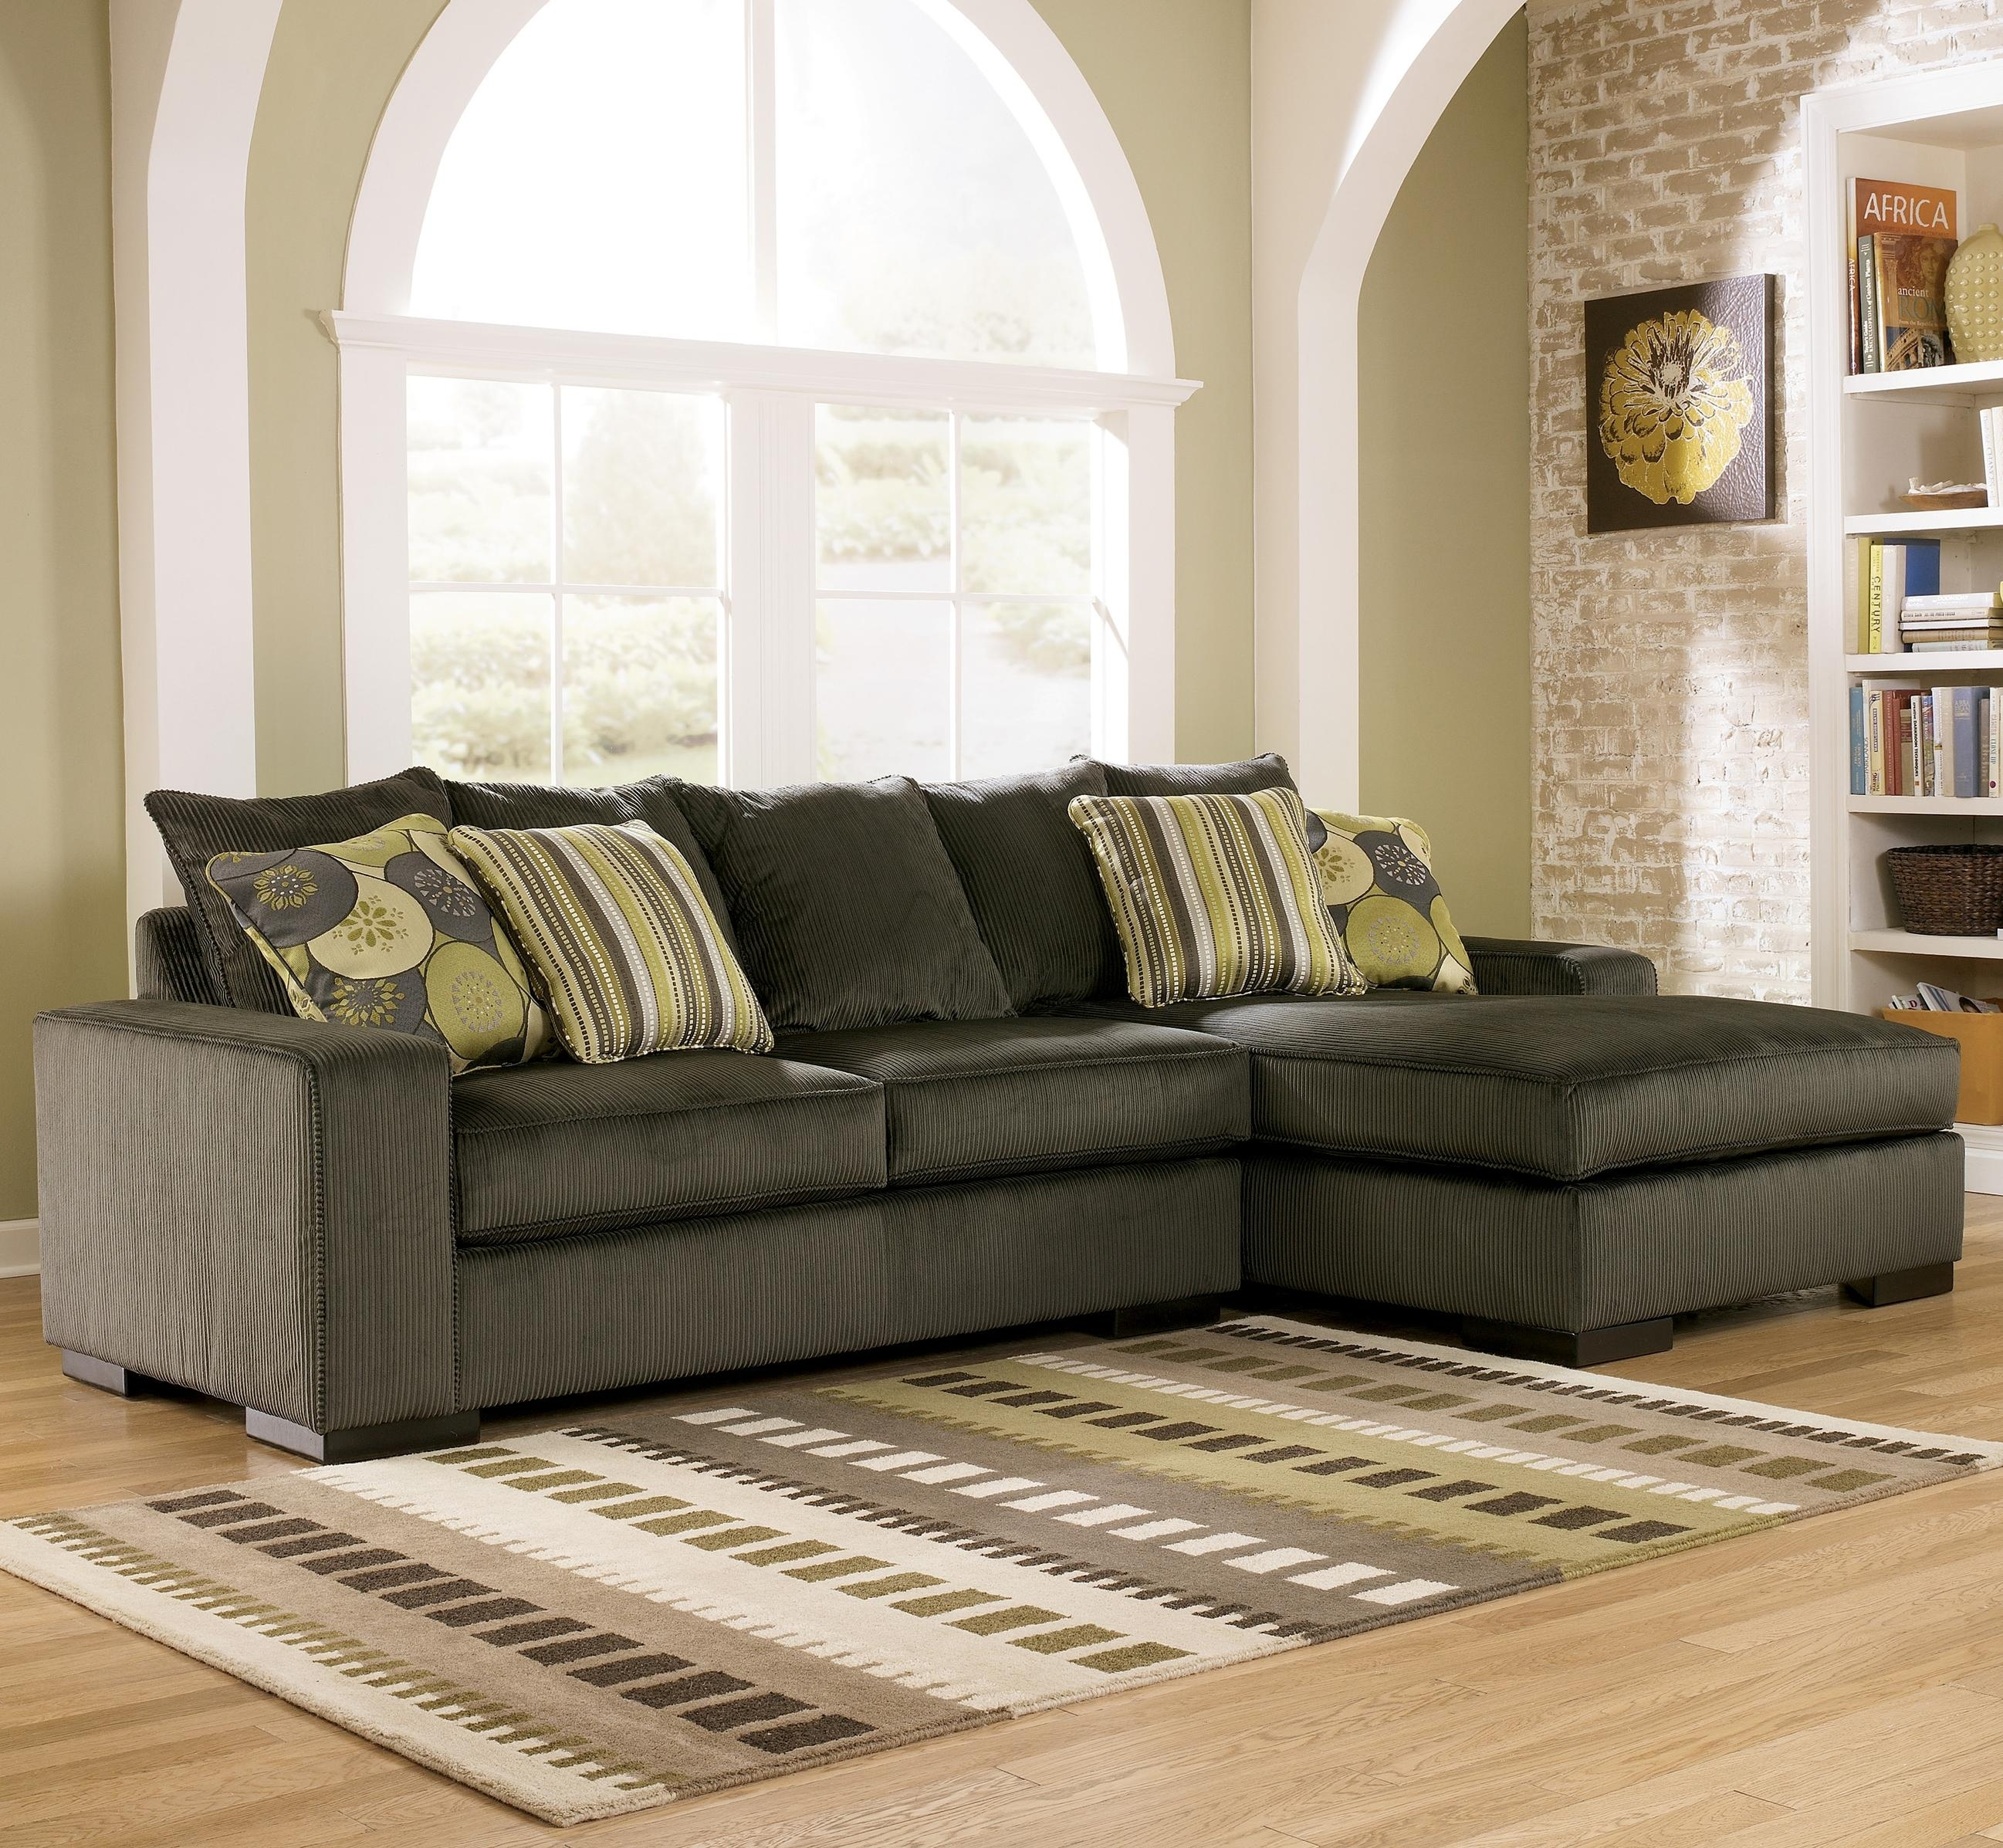 The Best Pensacola Fl Sectional Sofas